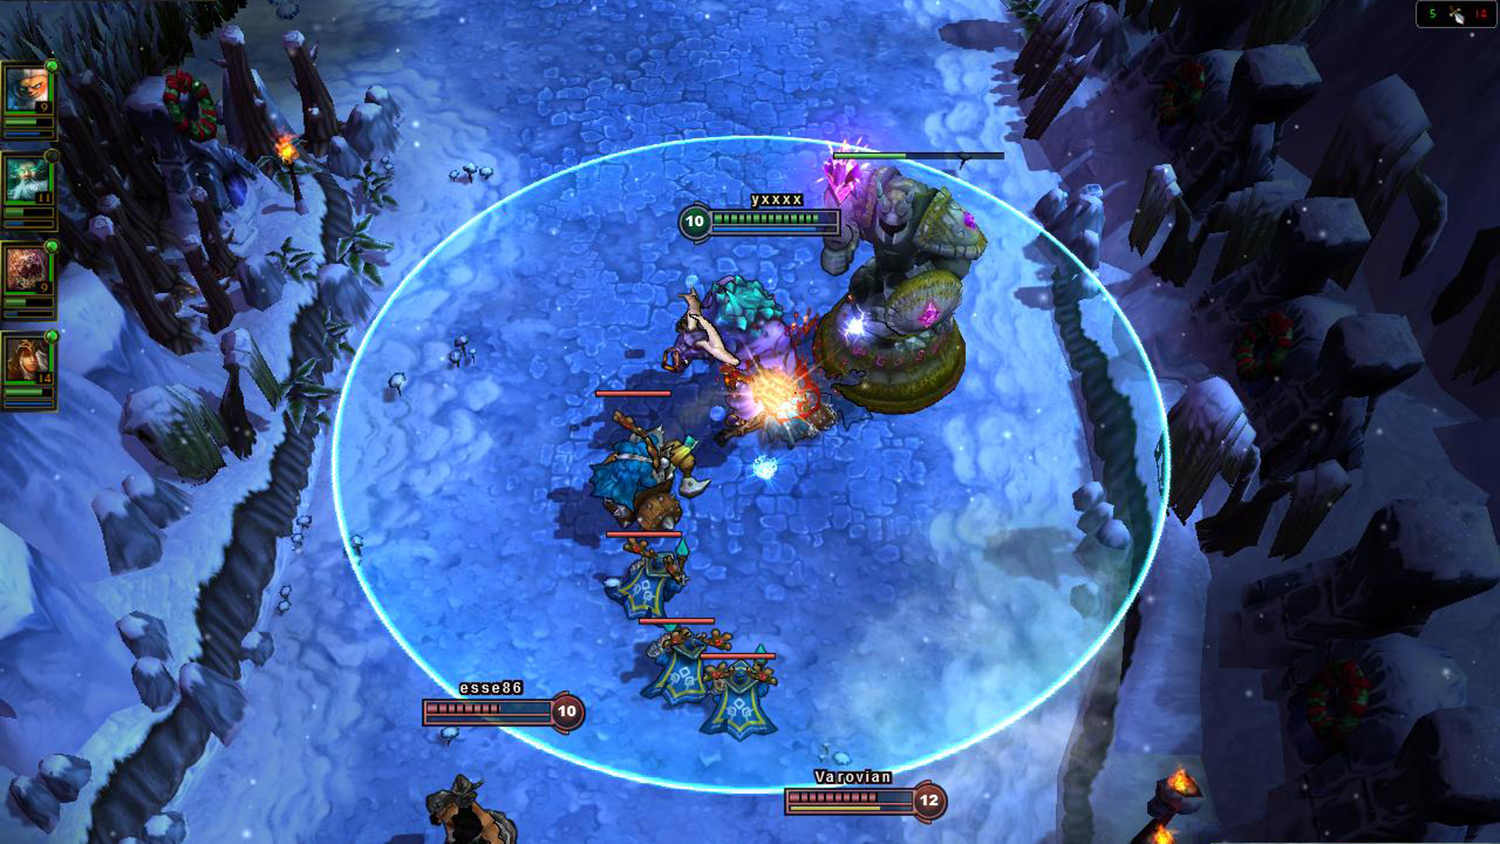 Screenshot of the League of Legends game